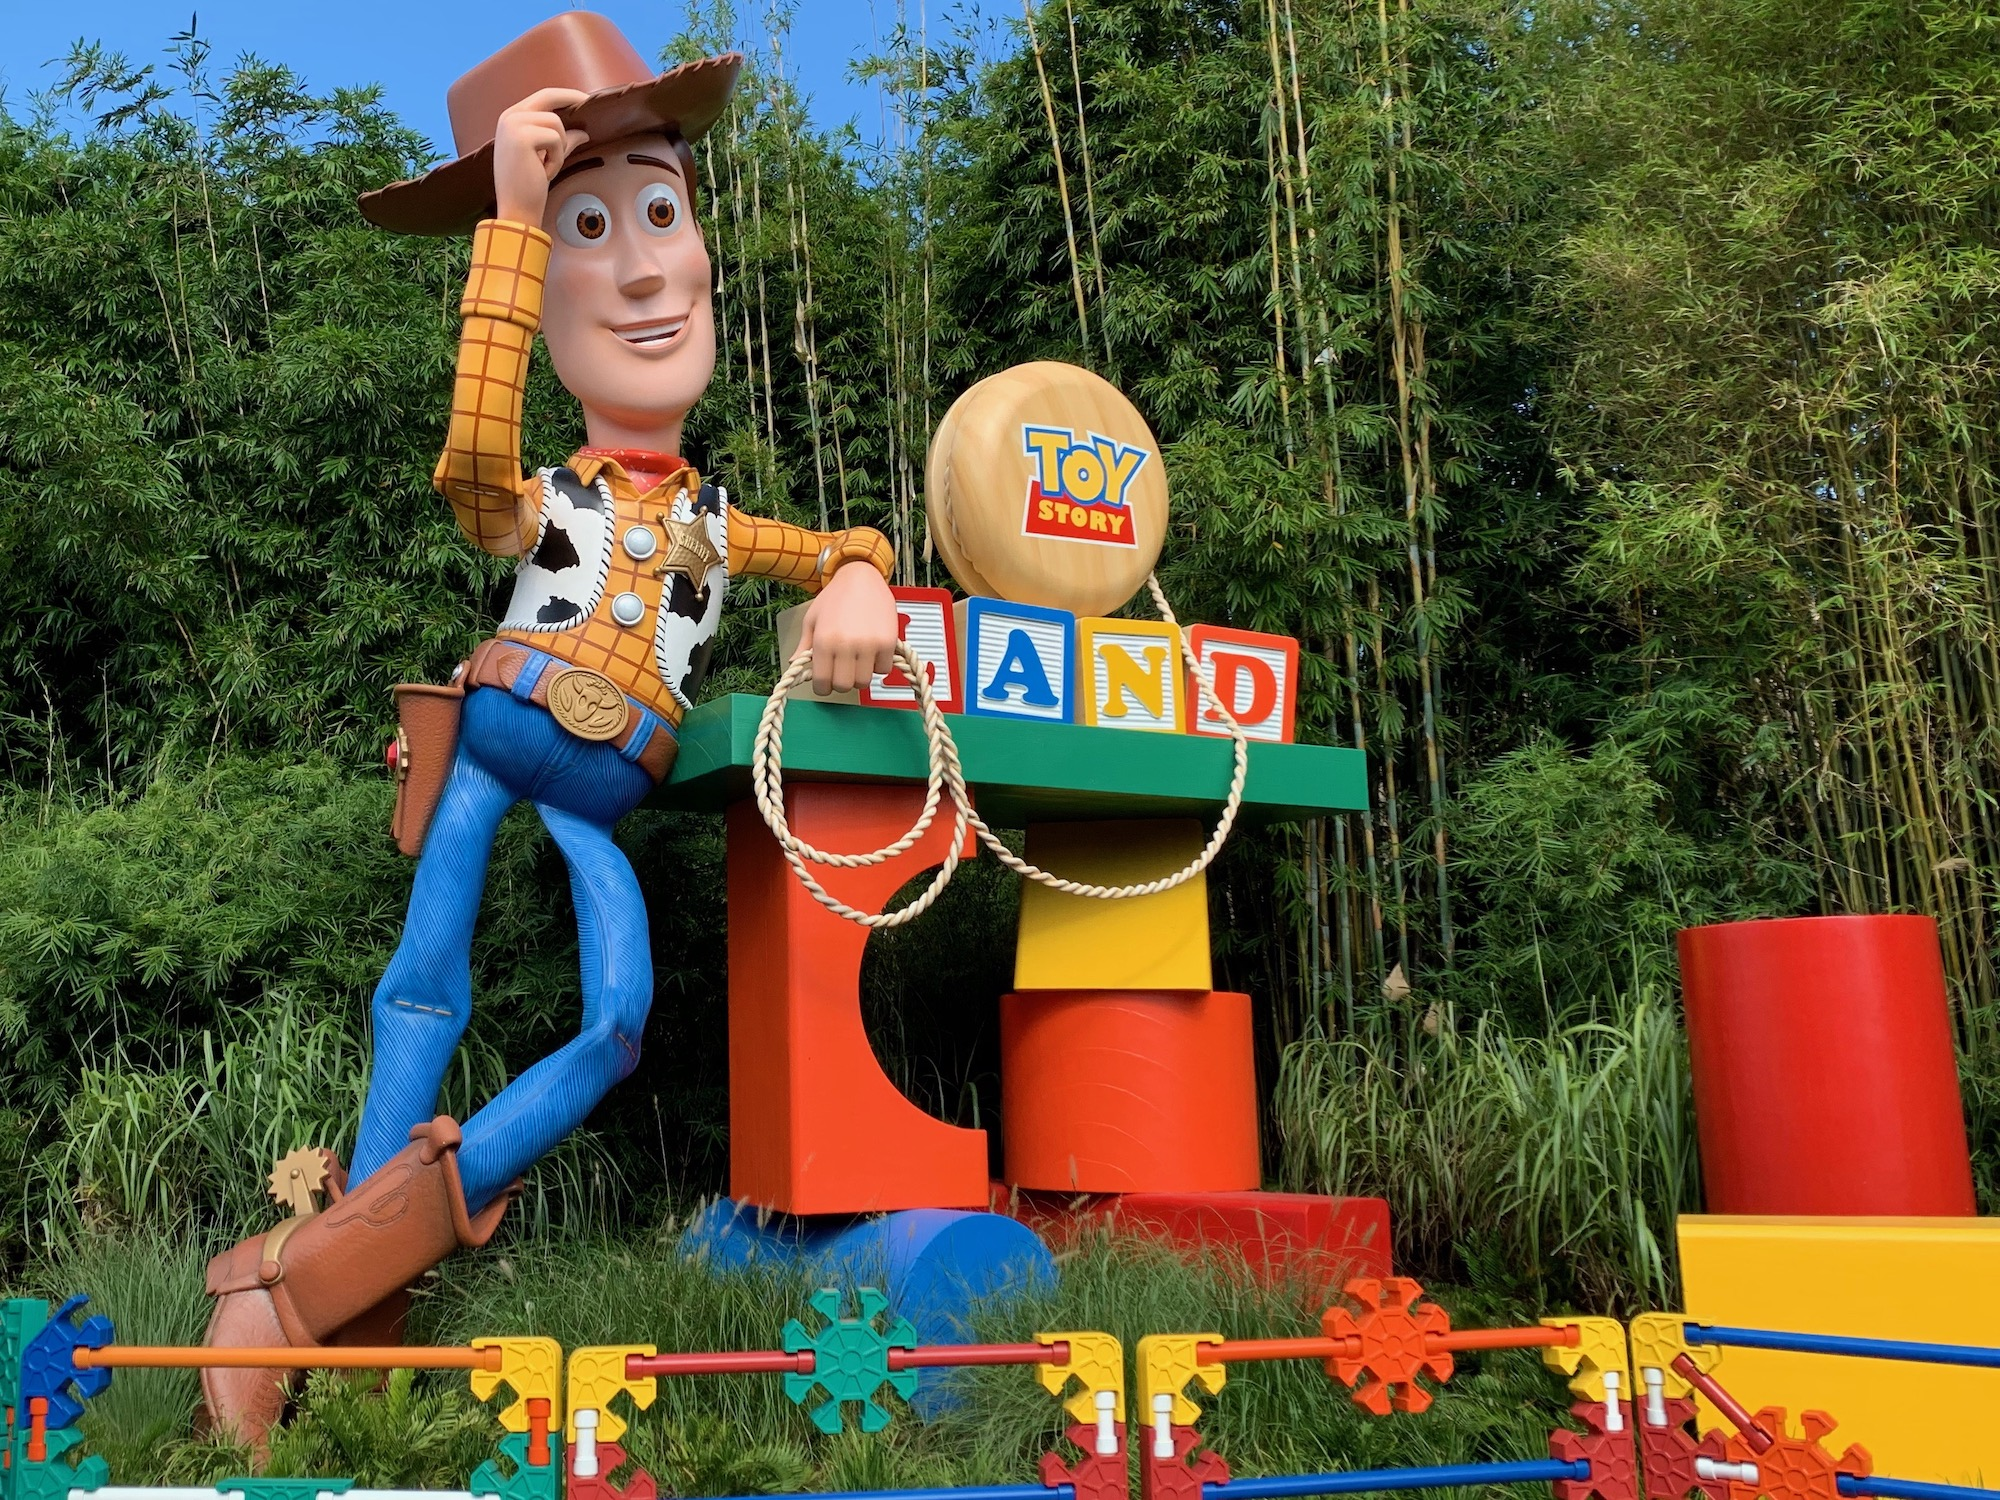 roundup rodeo bbq toy story land woody.jpeg